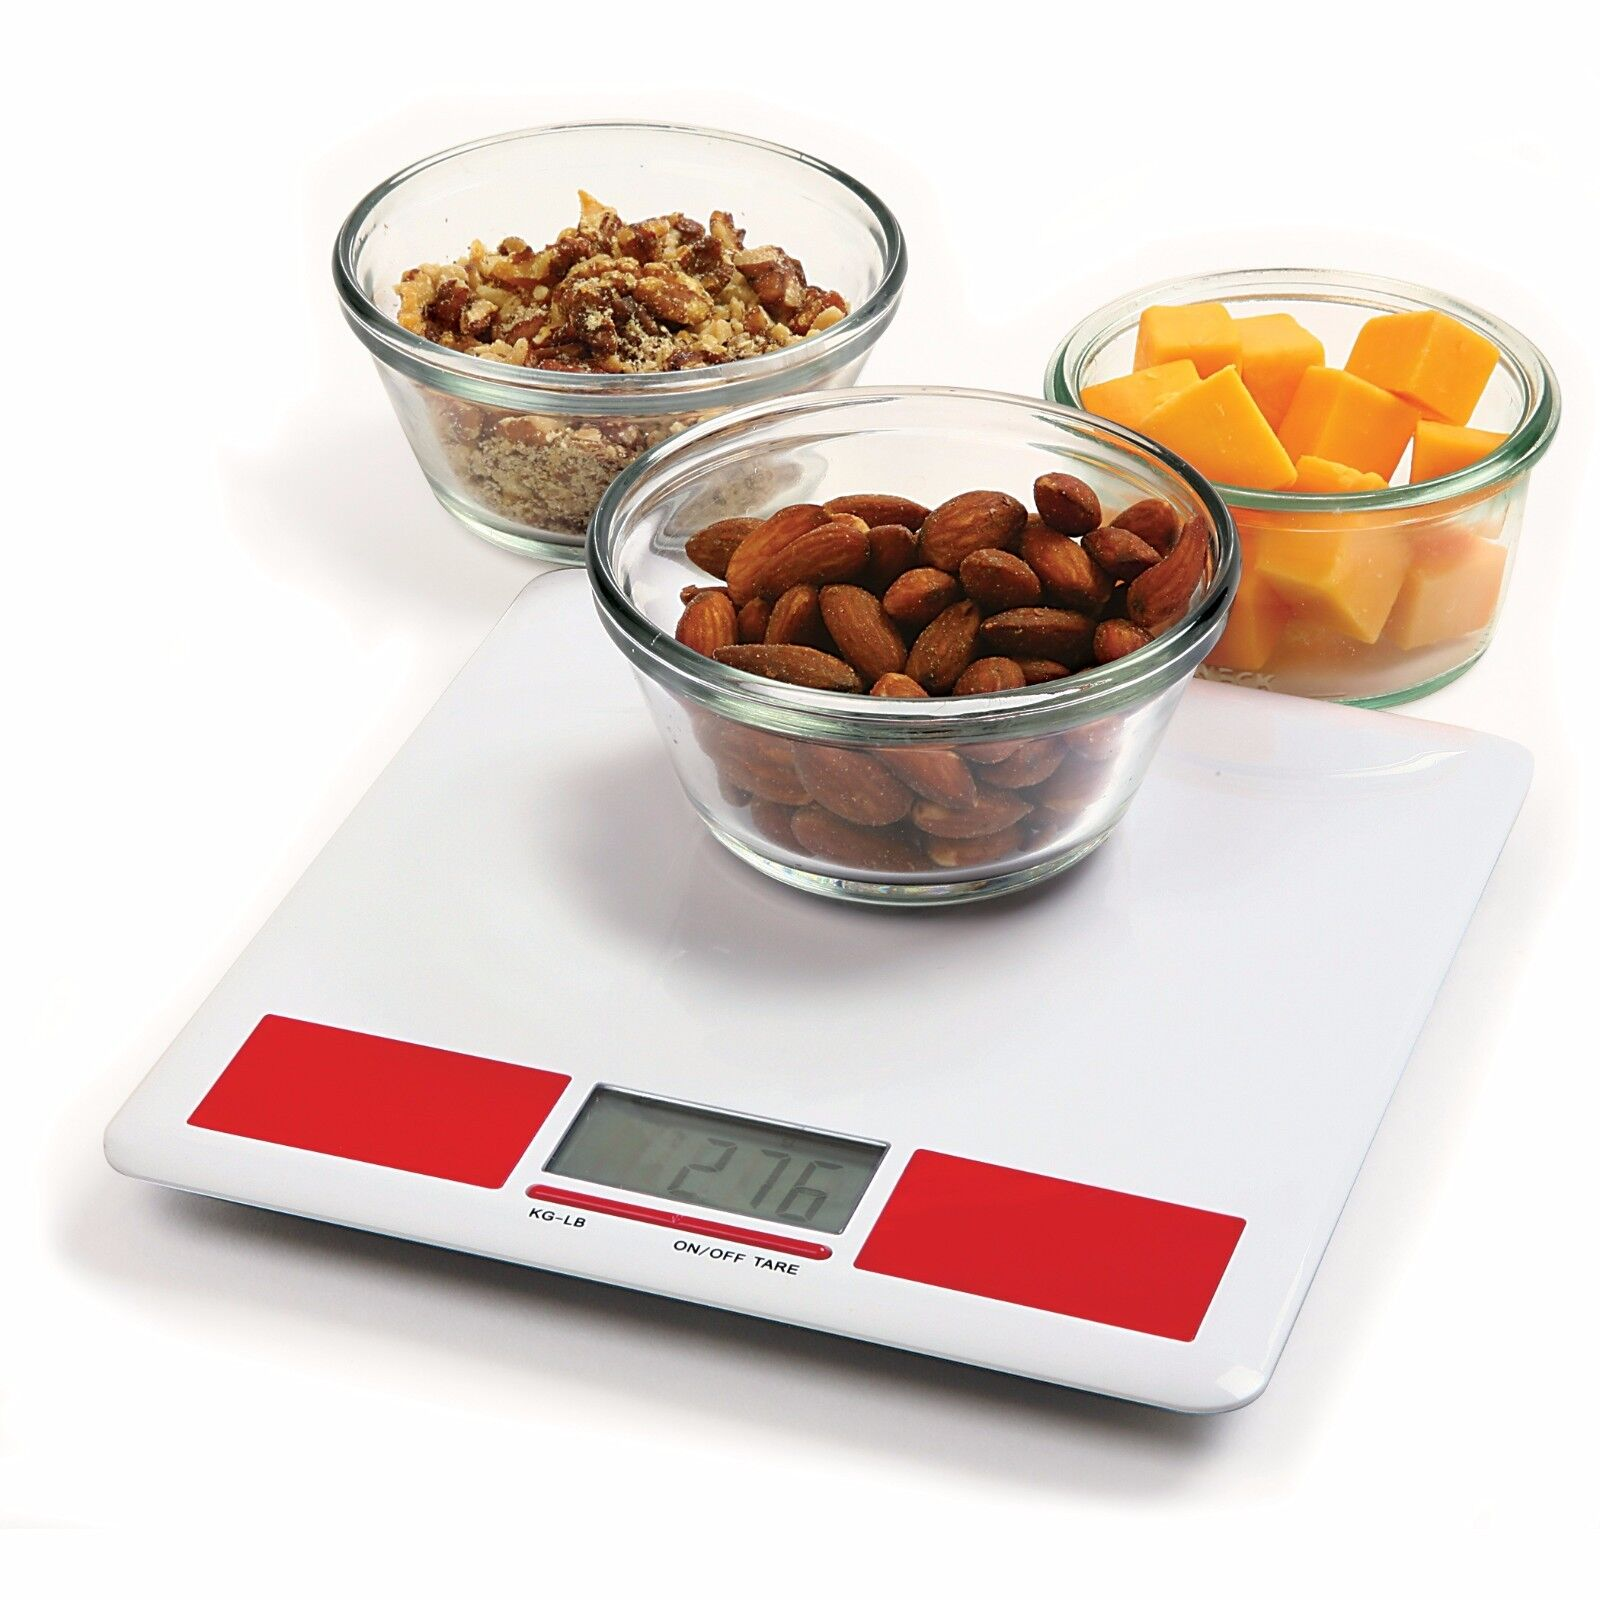 Norpro Digital Diet Scale 11LB/5KG Kitchen Accurate Portion Control 8634